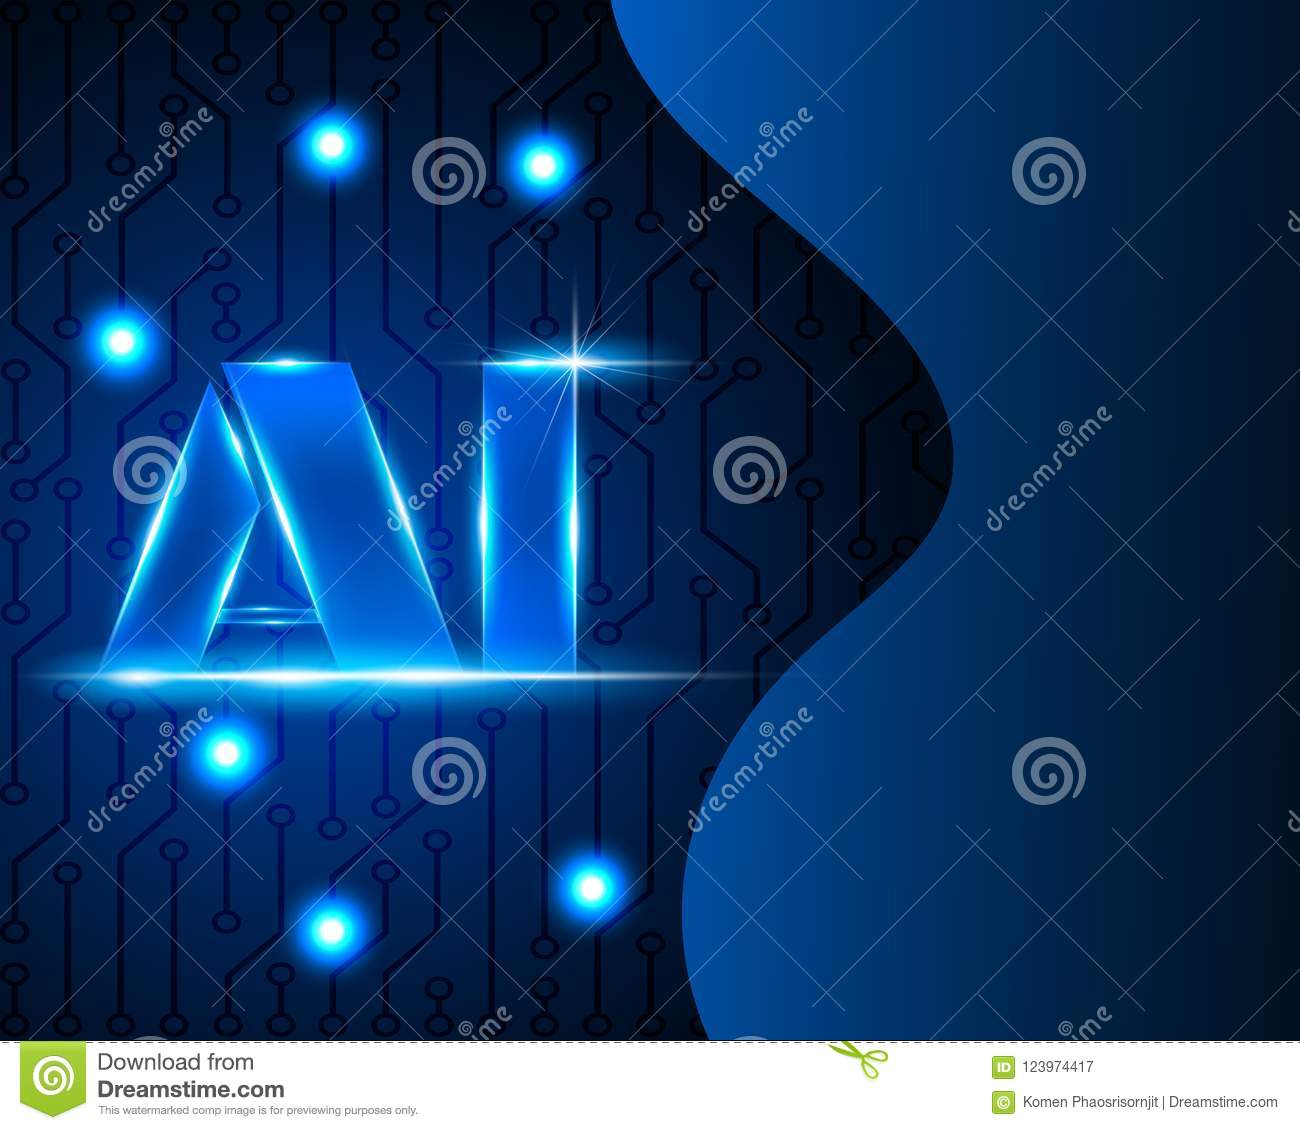 AI Letter Digital Artificial intelligence and big data Machine